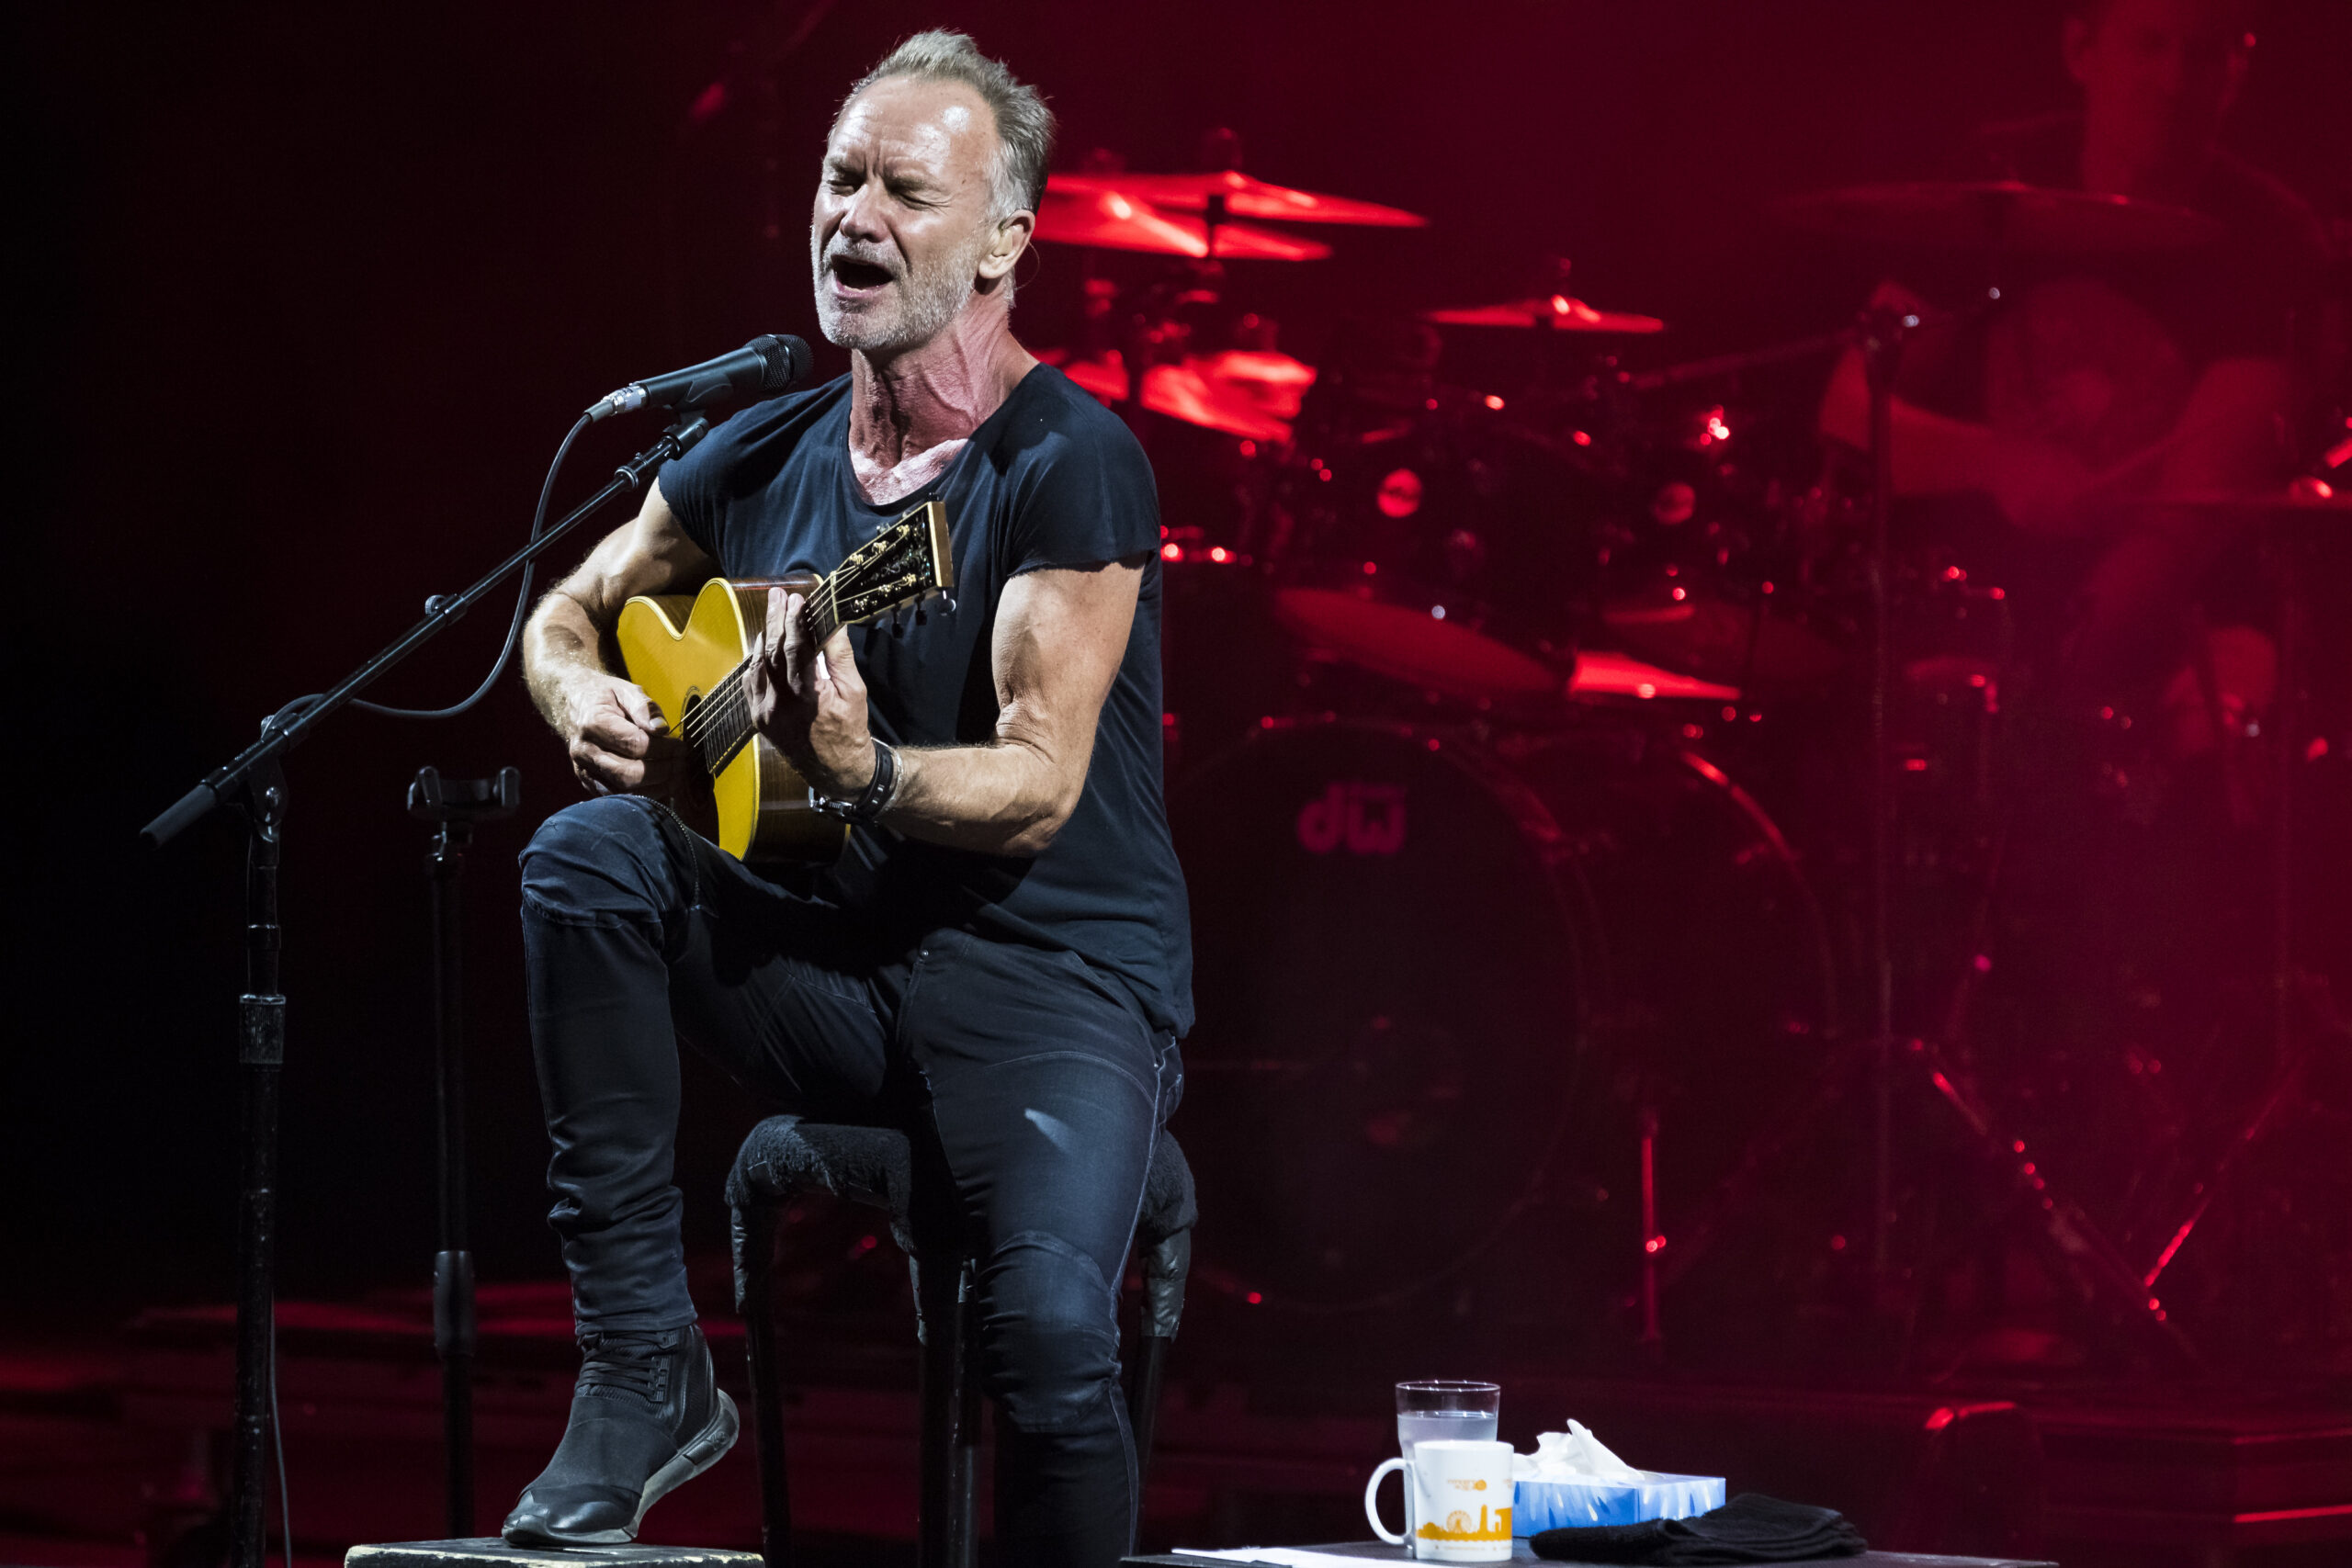 Sting at concert band photography